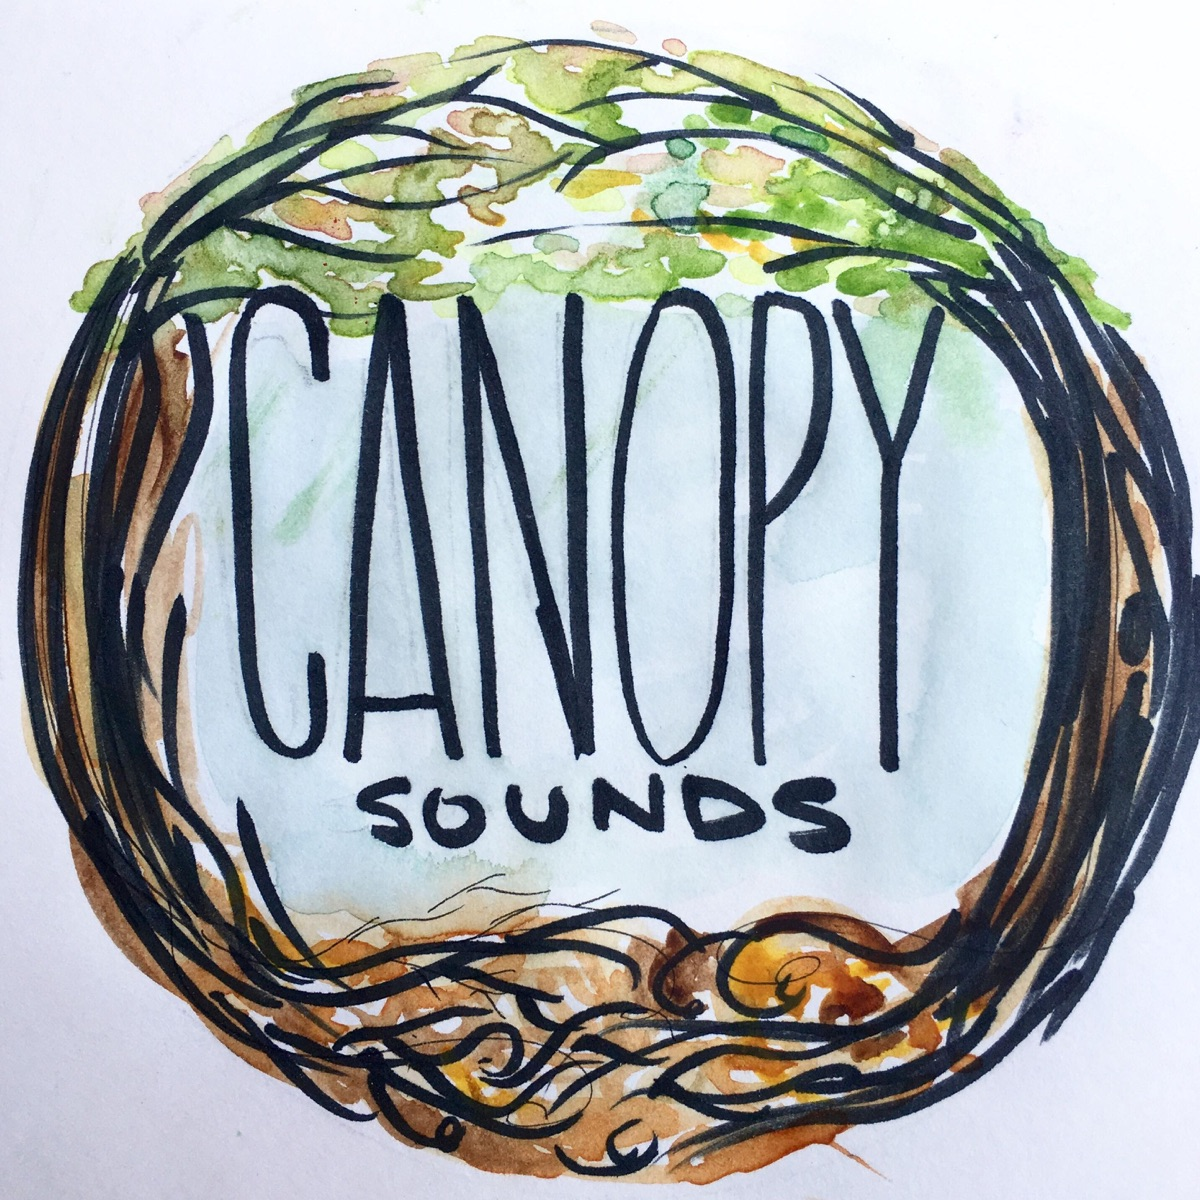 Canopy Sounds 79: Shakib Jakir & Eric Shans (EXCLUSIVE)